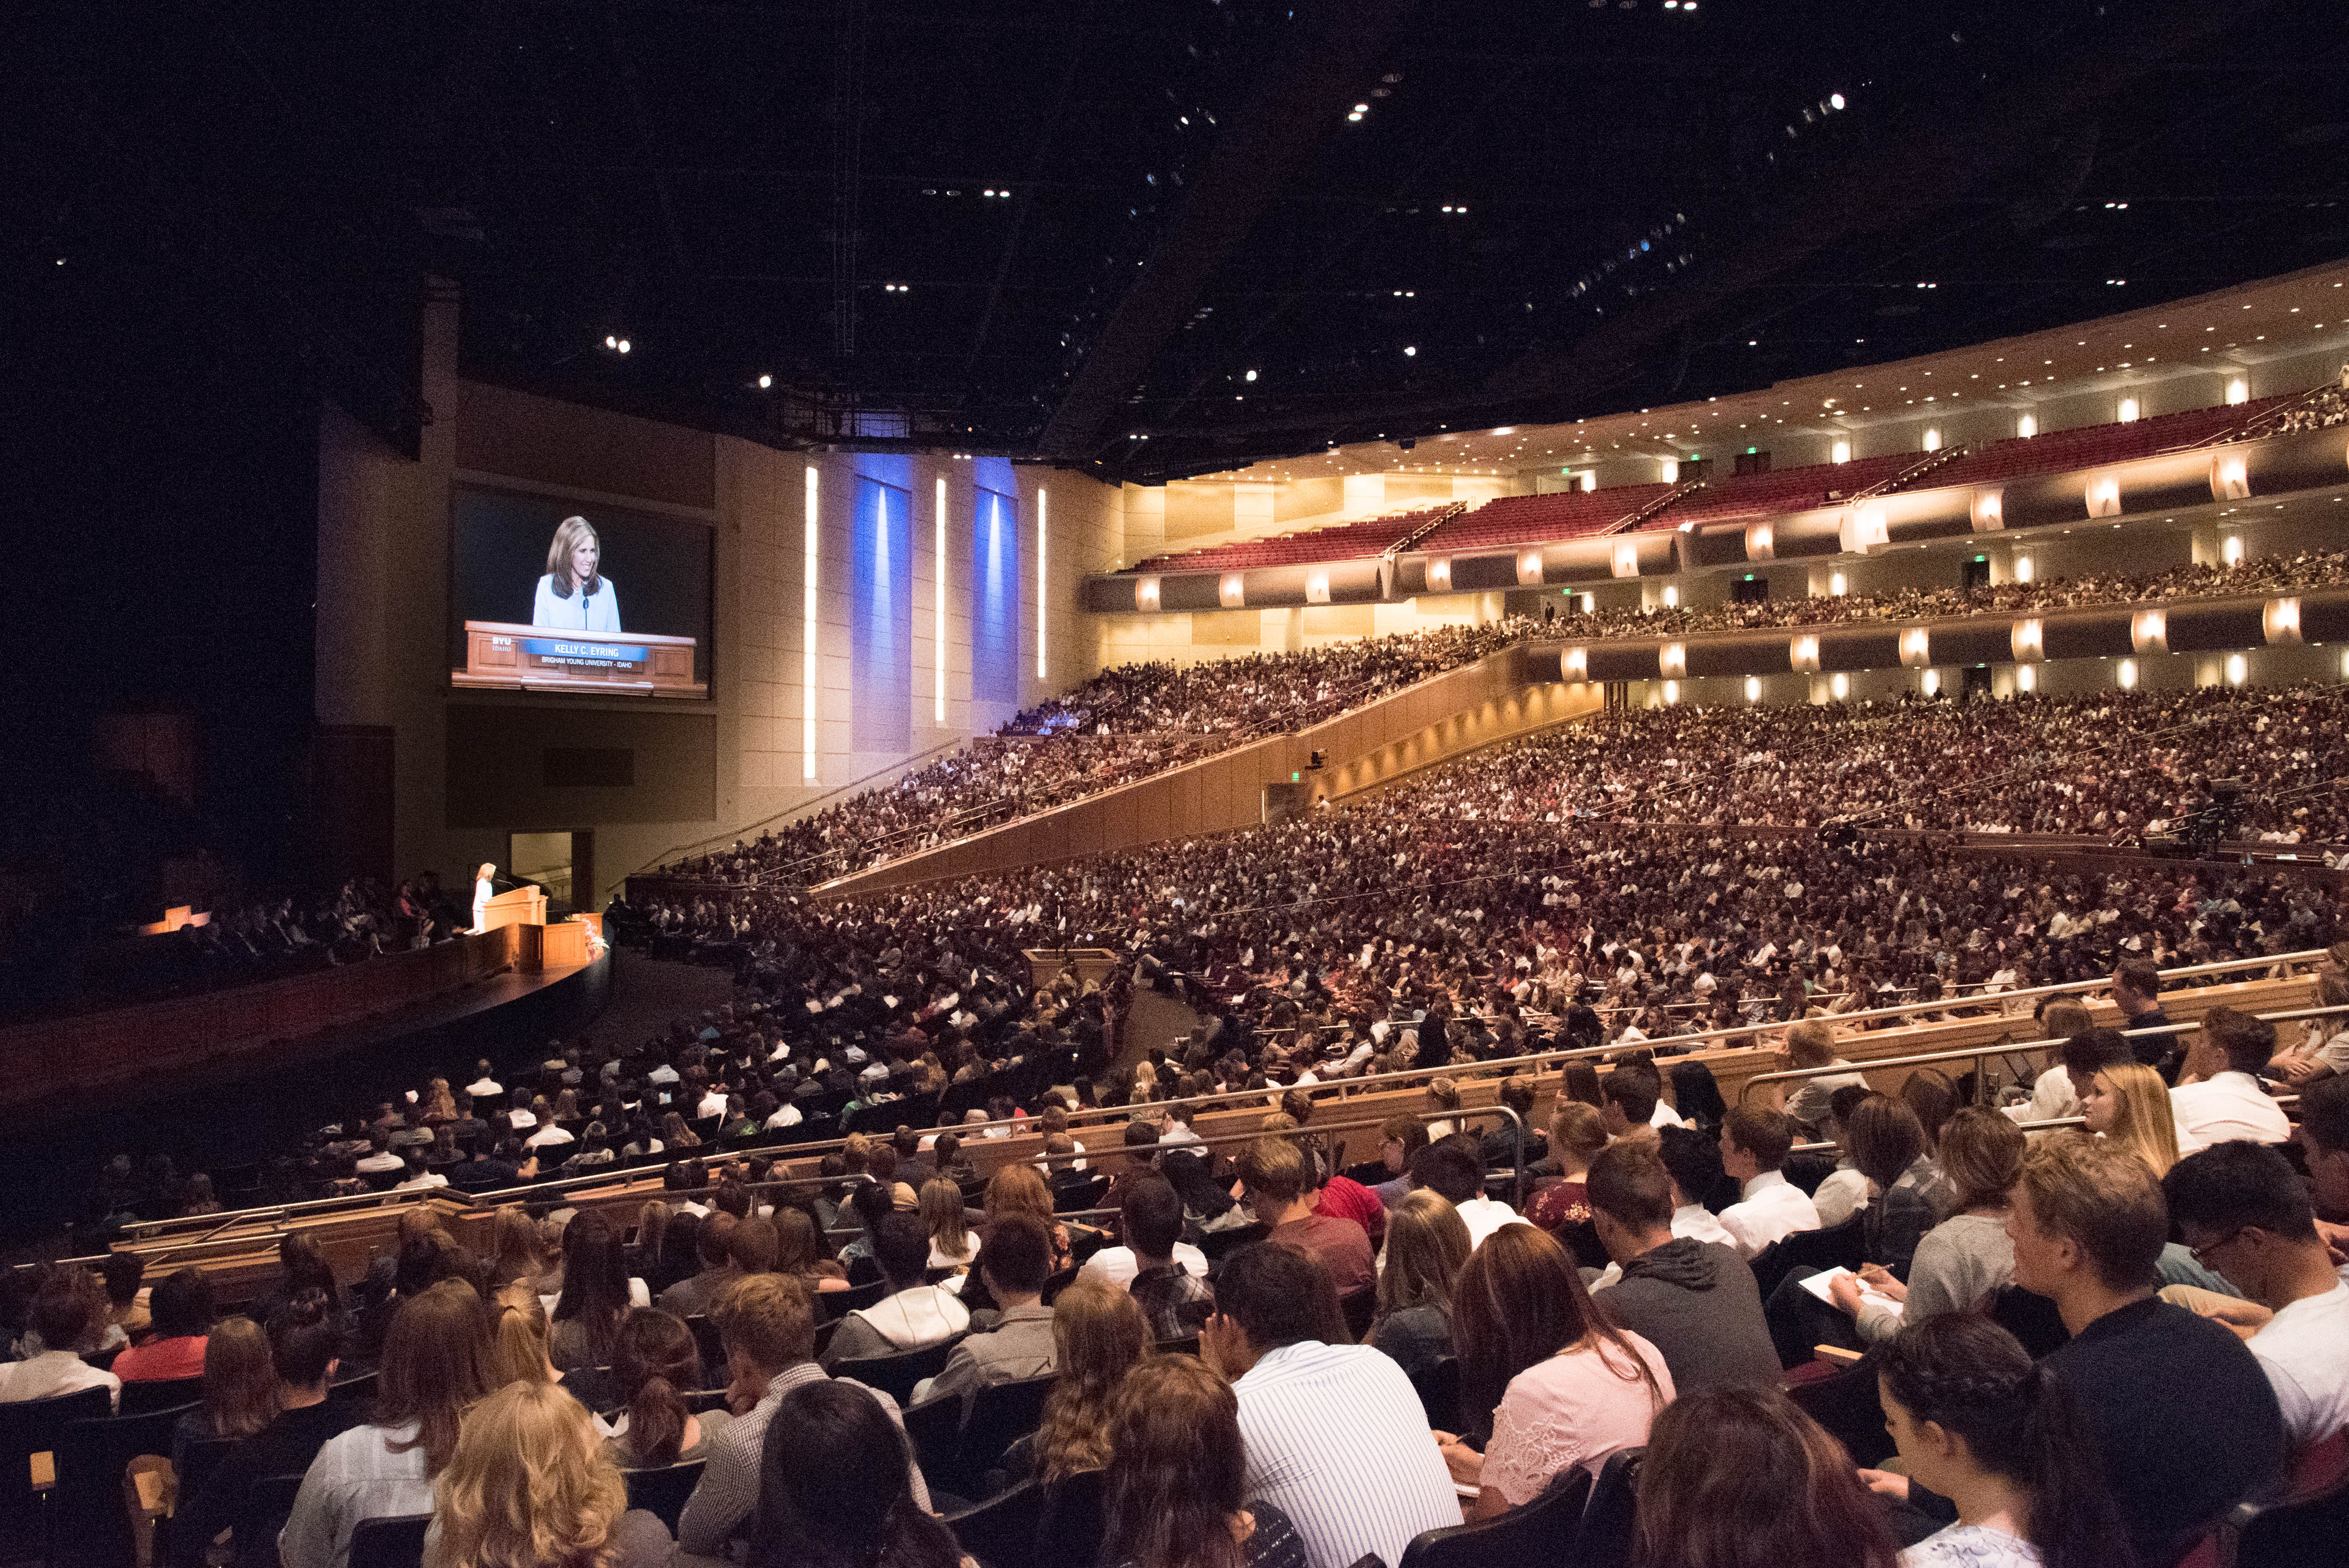 Sister Kelly C. Eyring speaks at a devotional in the BYU-Idaho Center in Rexburg, Idaho, on Sept. 18, 2018.